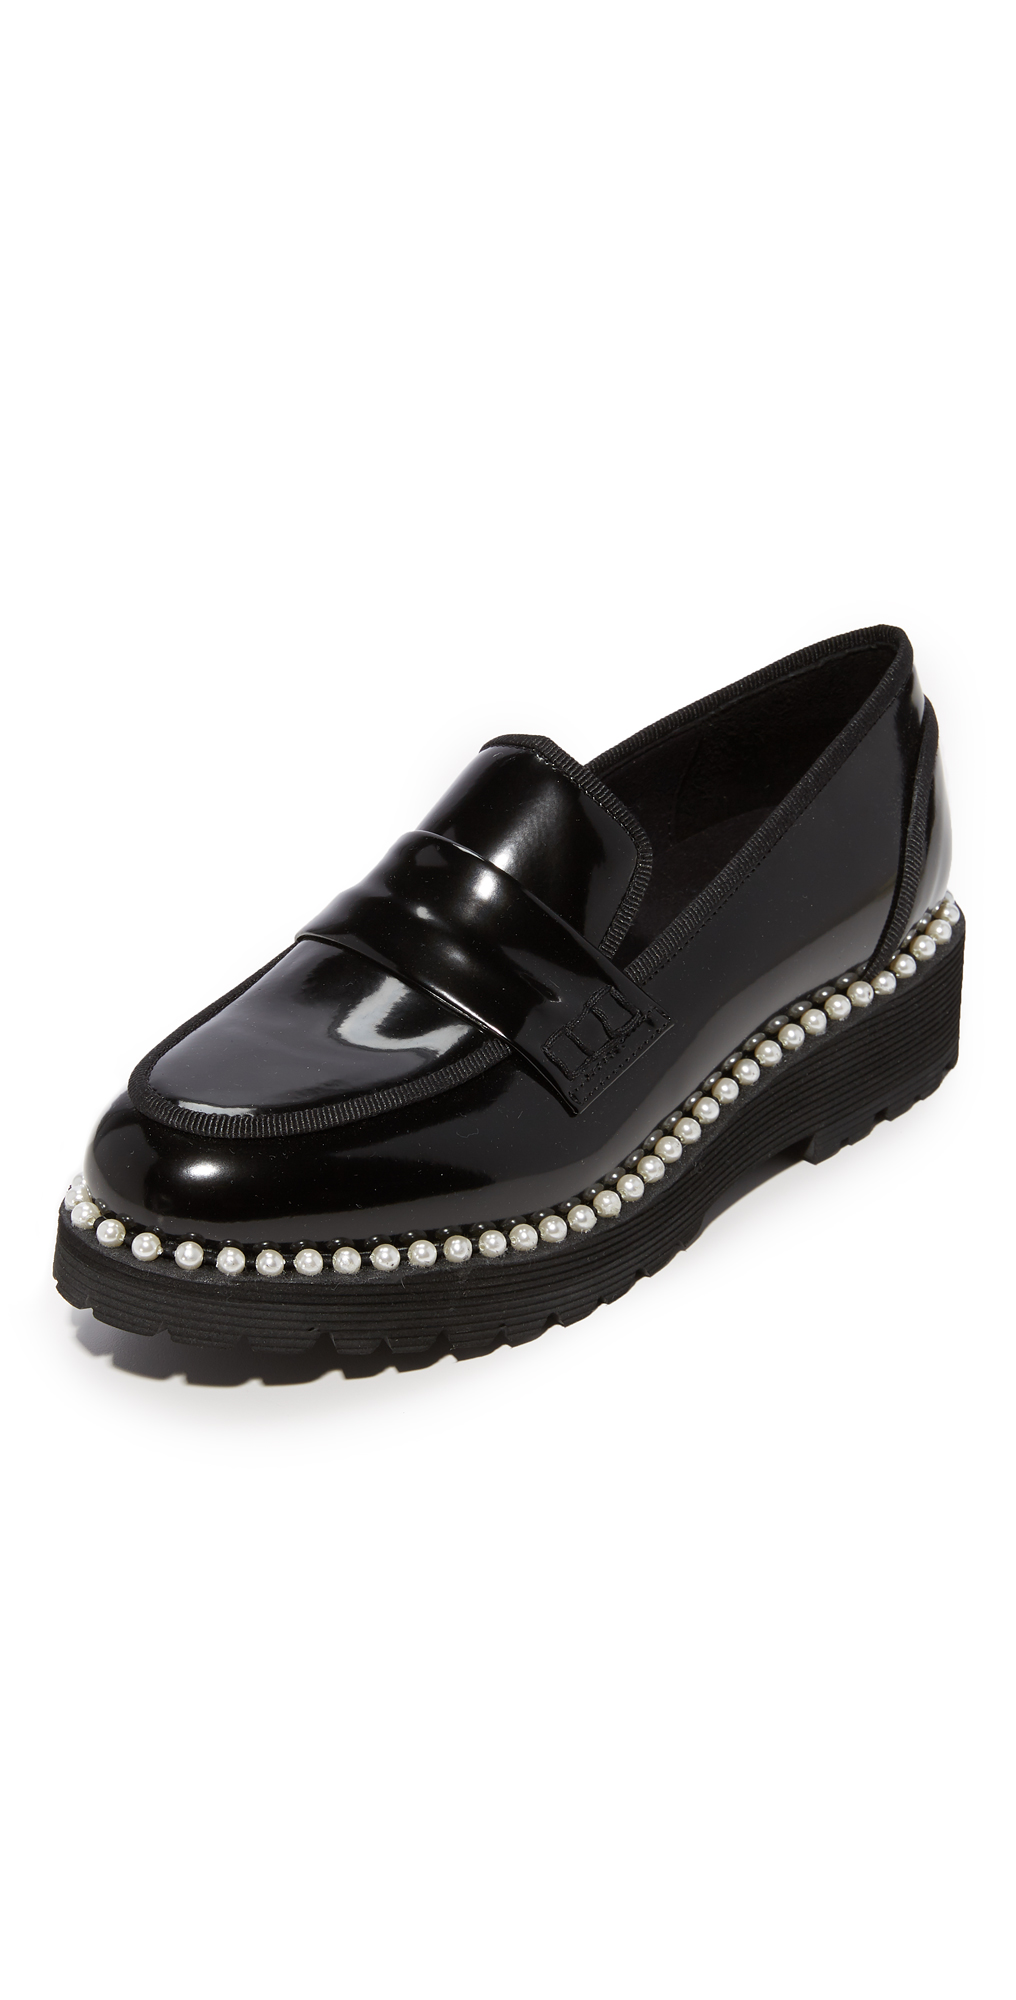 Faux Pearl Detailed Loafers Suecomma Bonnie